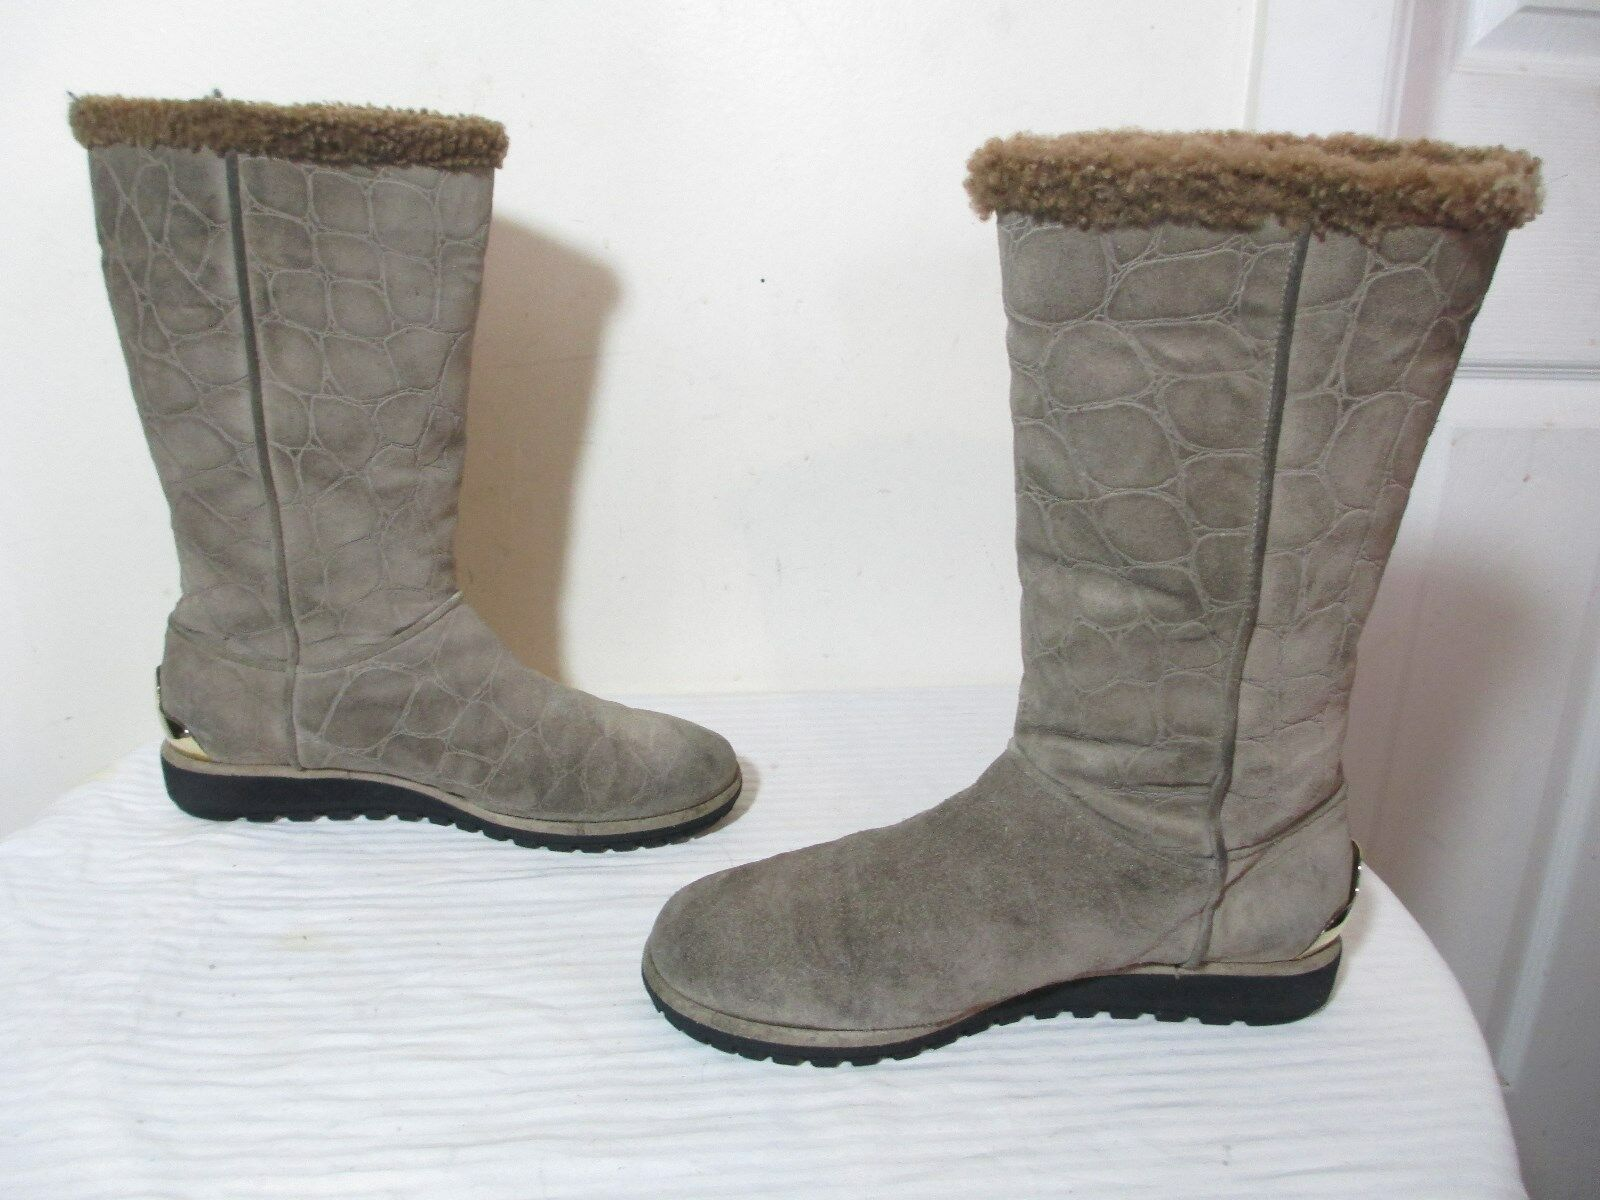 STUART WEITZMAN MID CALF SNAKE EMBOSSED NEUTRAL SUEDE WINTER WEDGE WEDGE WEDGE BOOTS SZ 9 33e3b0